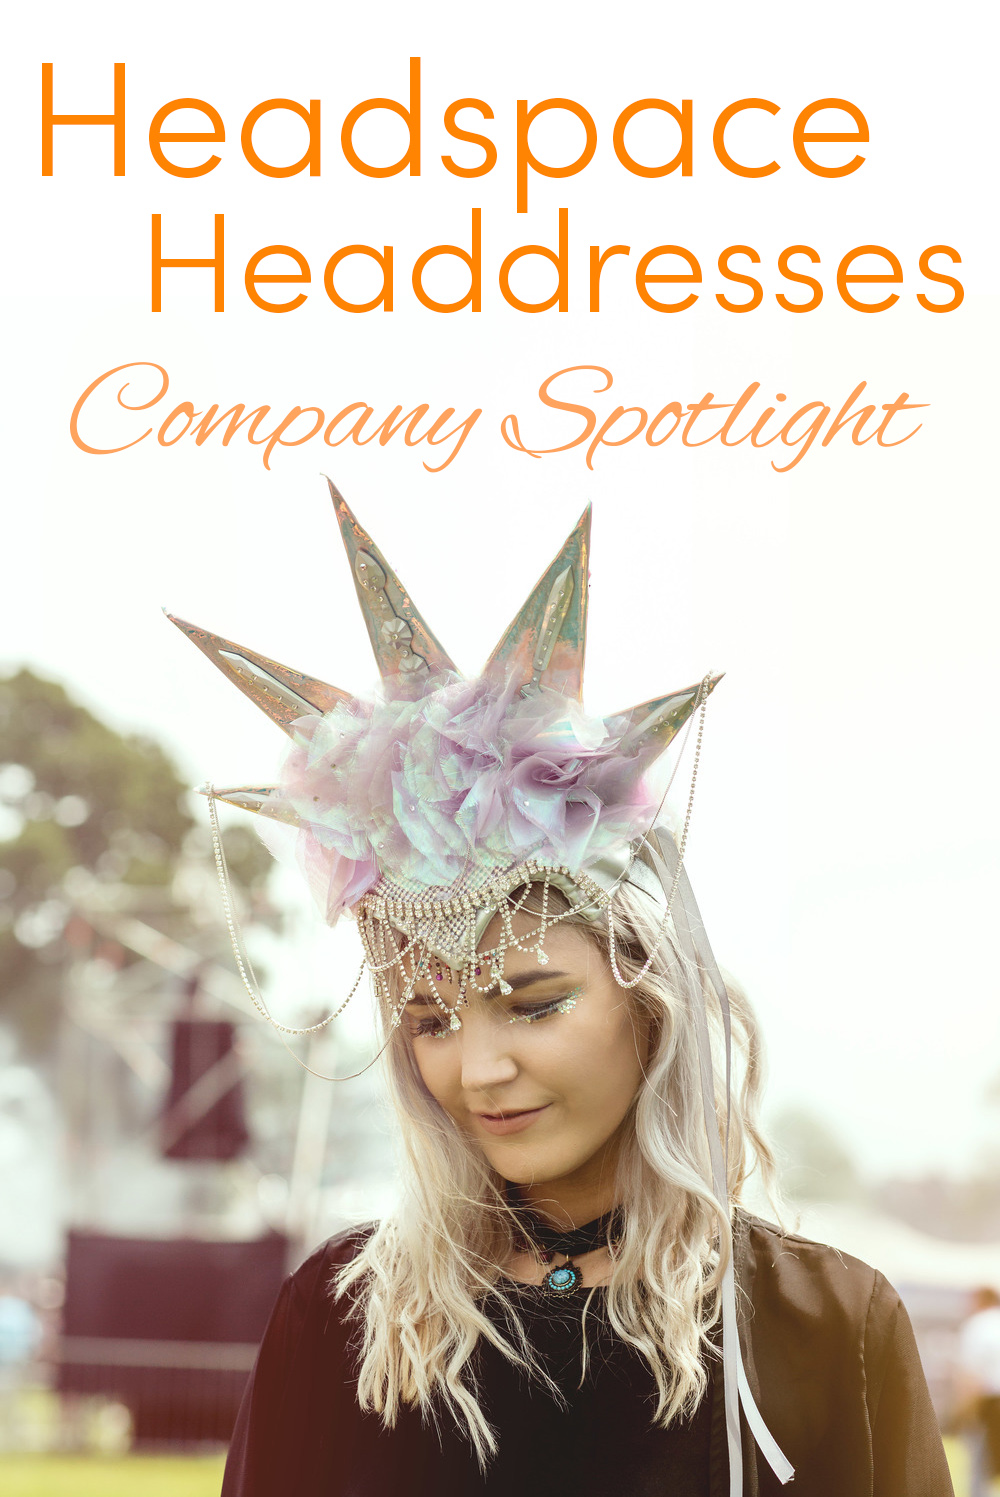 Pinterest share image - festival girl in space princess headdress from Headspace with blog title